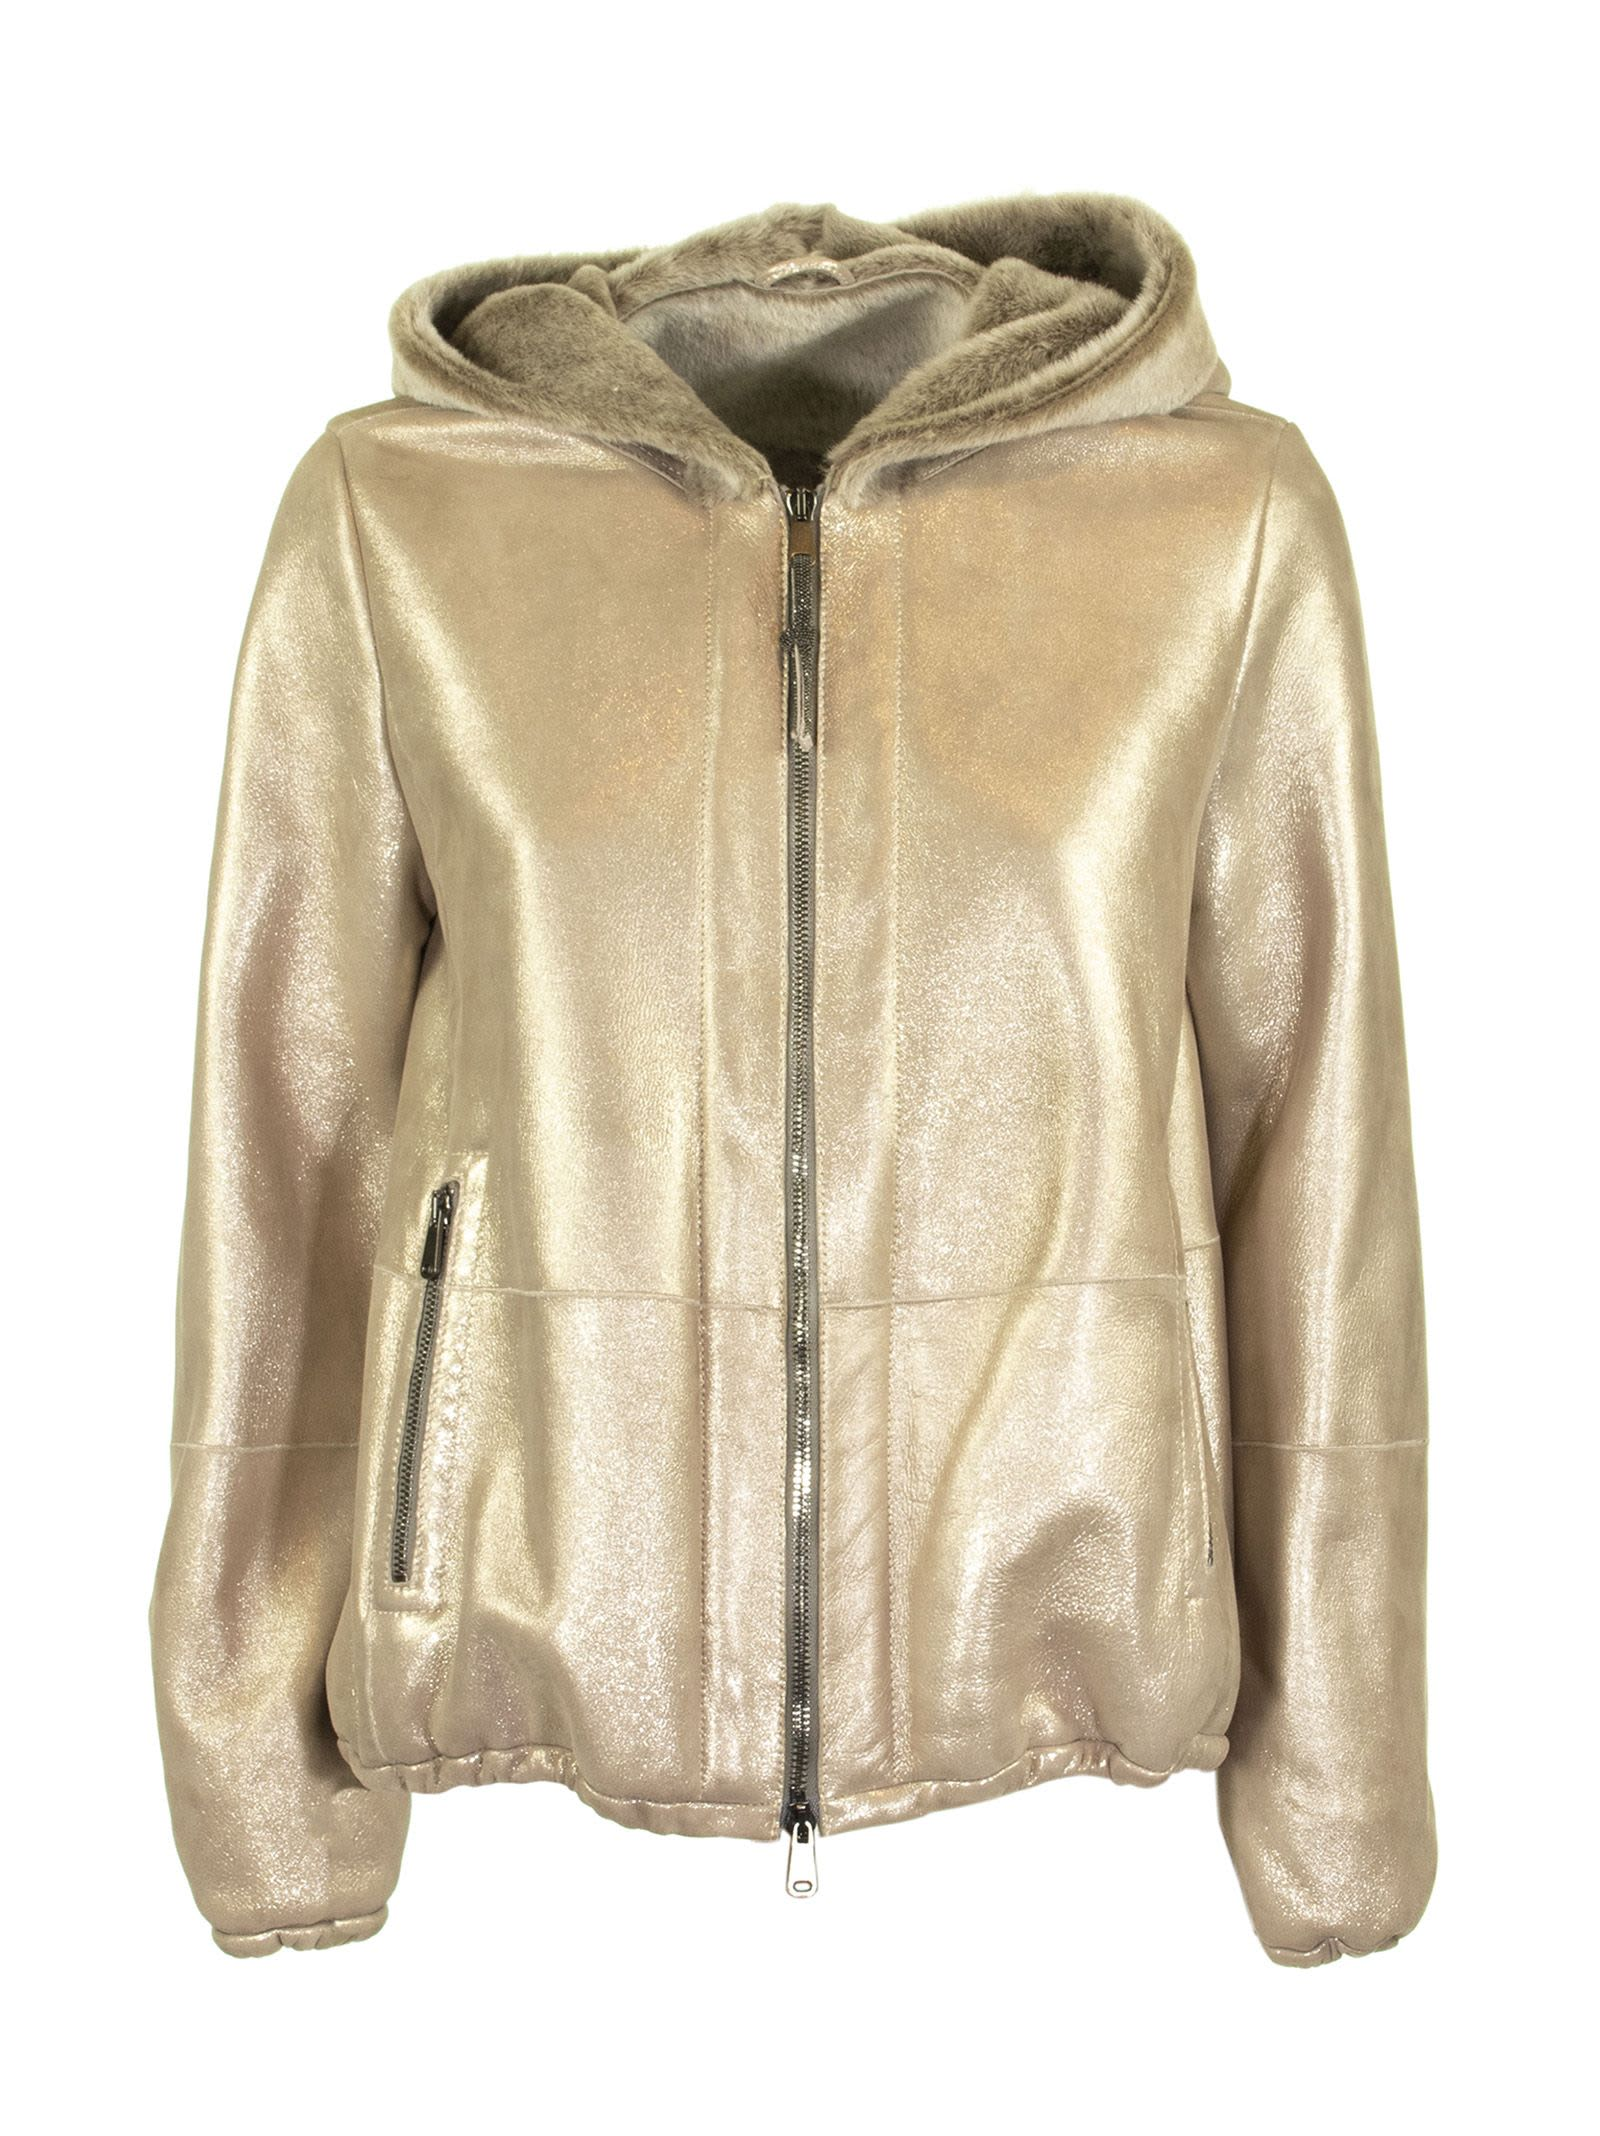 Brunello Cucinelli Sparkling Shearling Outerwear Jacket With Monili